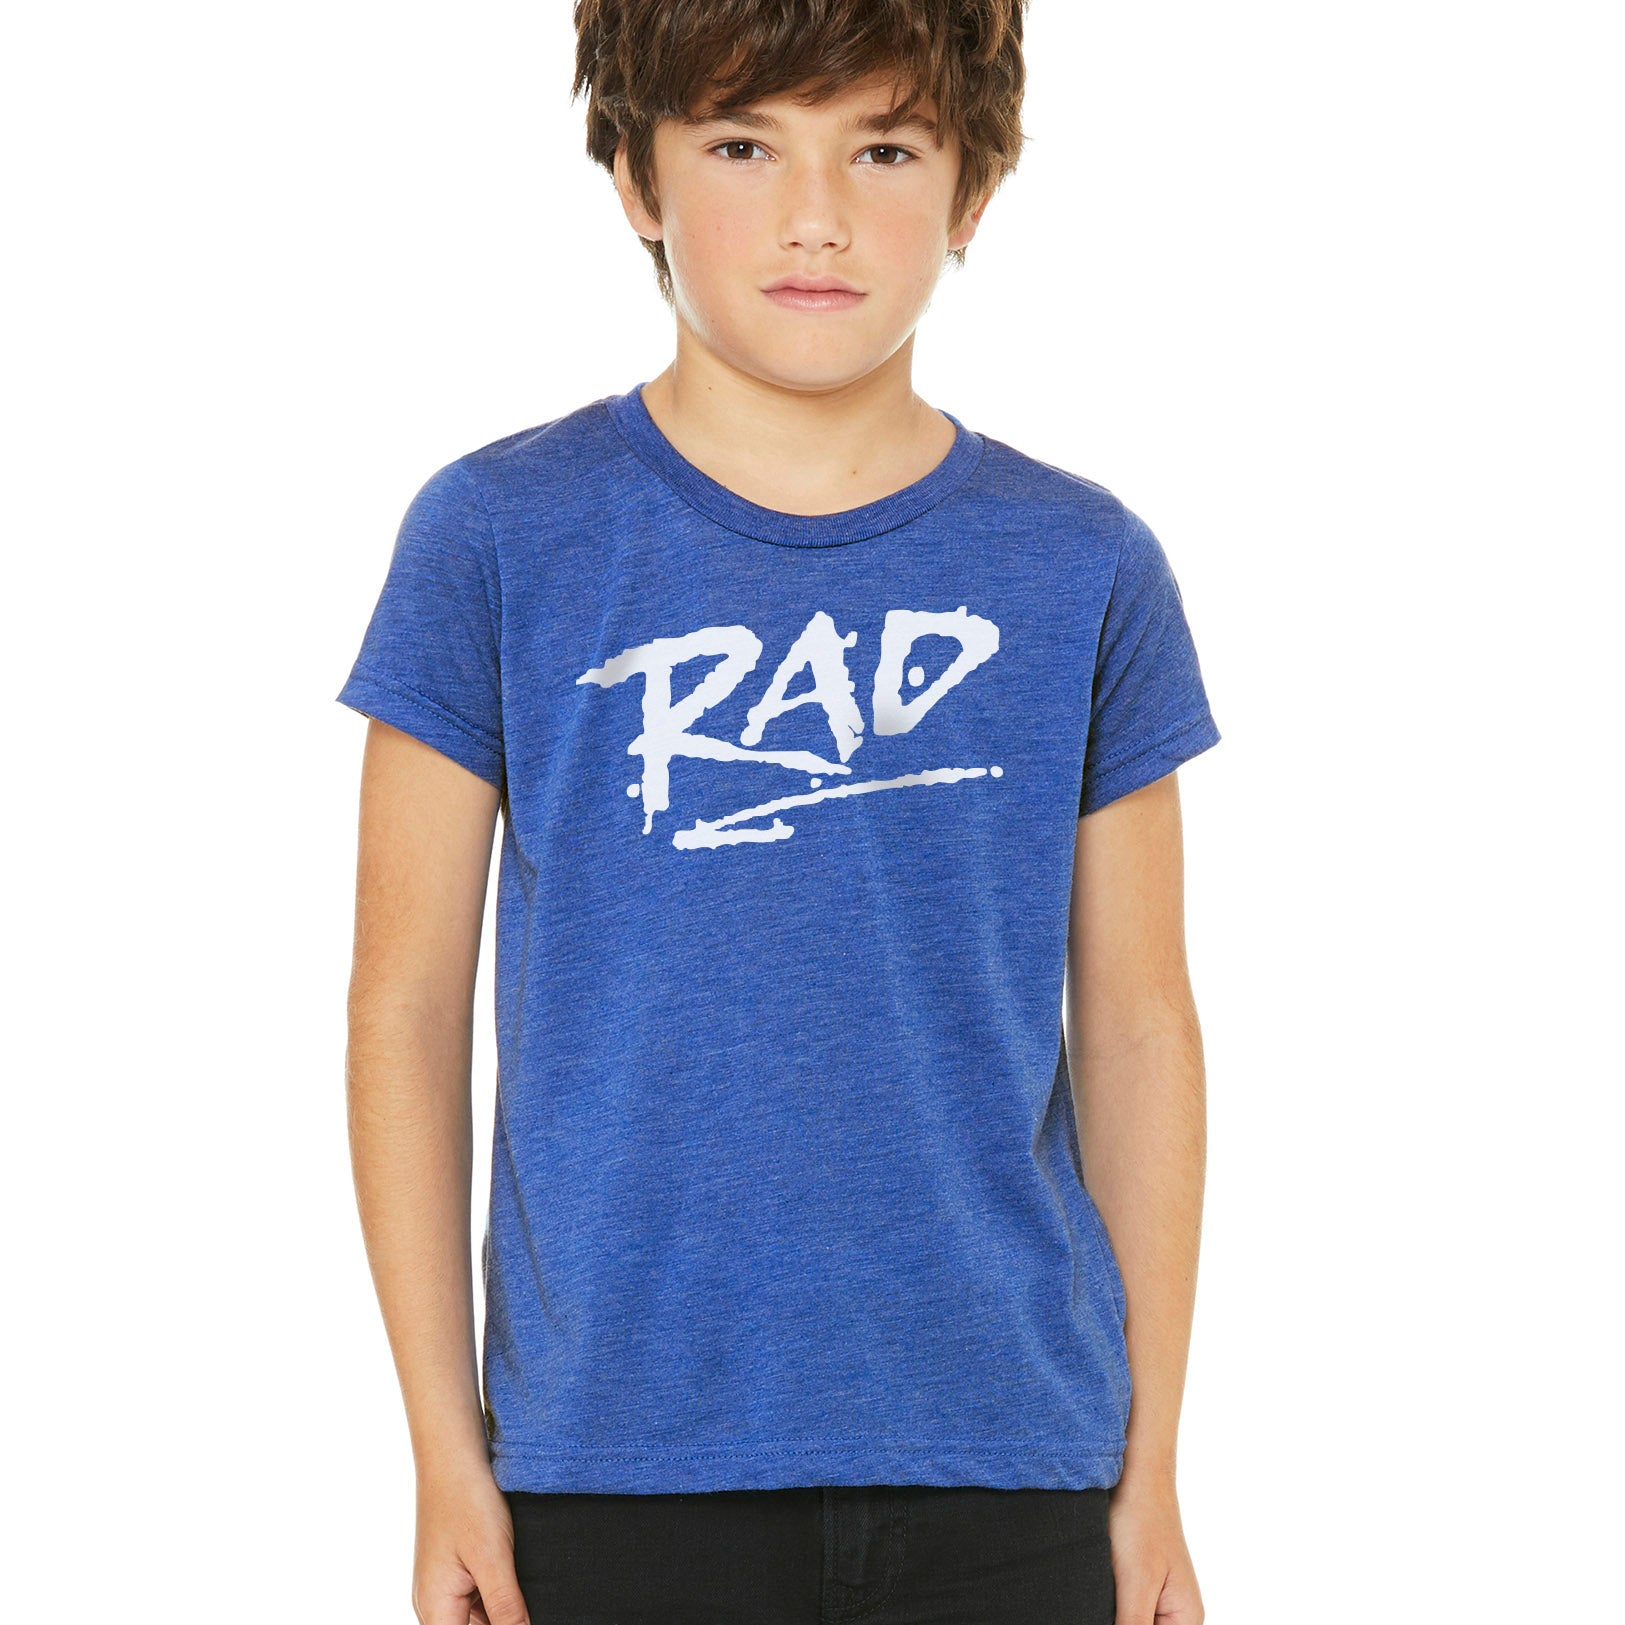 Rad Youth Tee